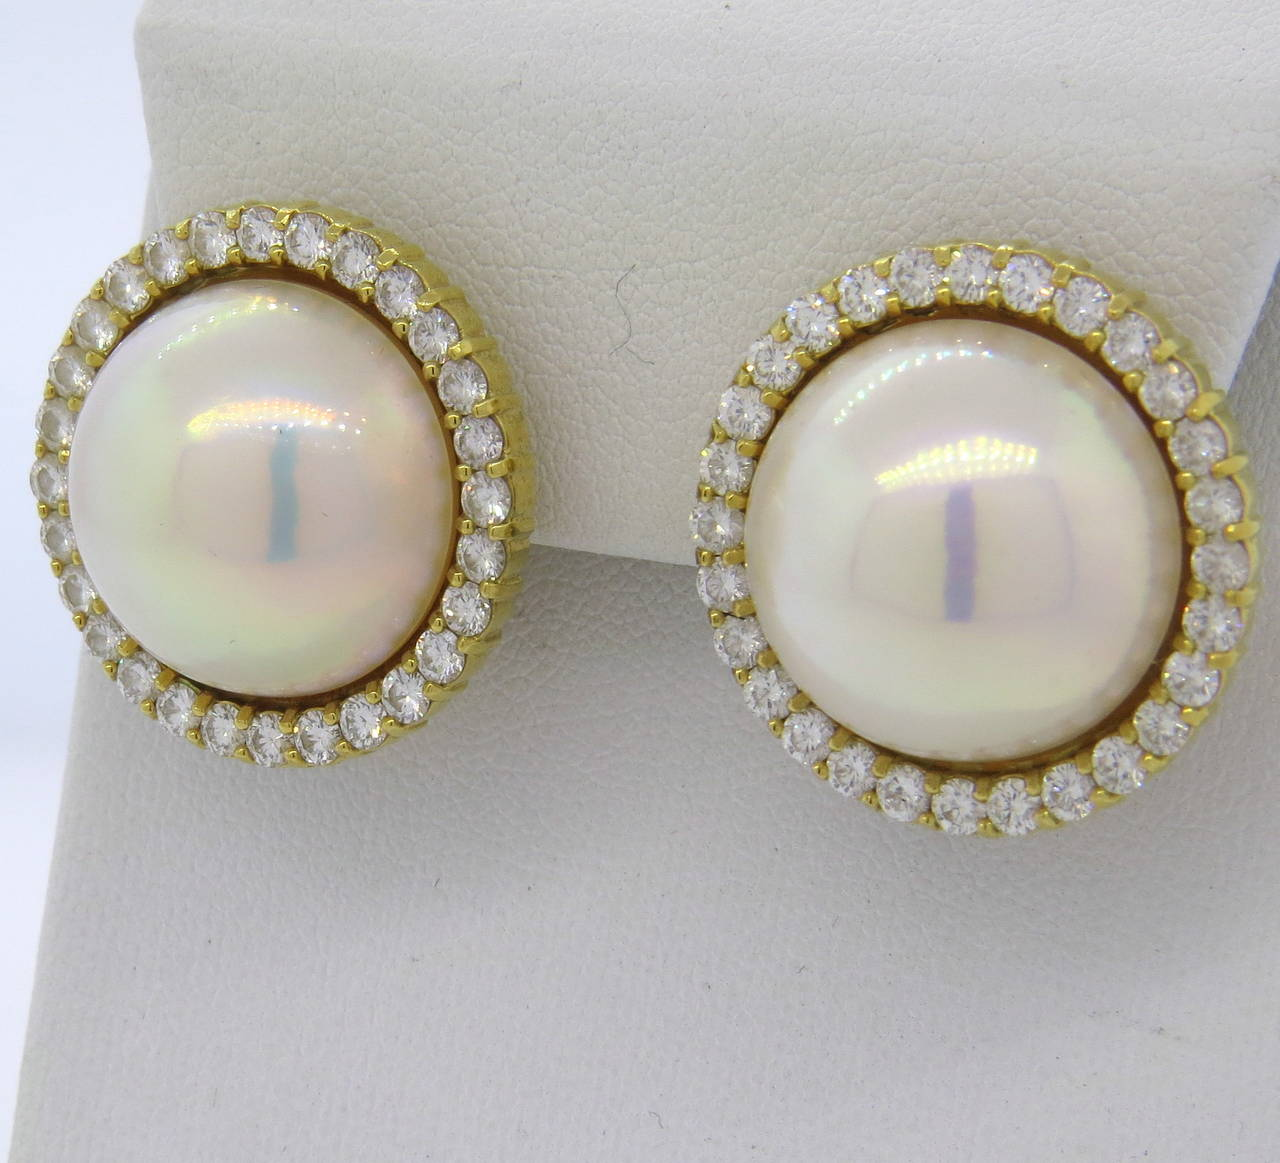 Find great deals on eBay for large pearl earrings. Shop with confidence.